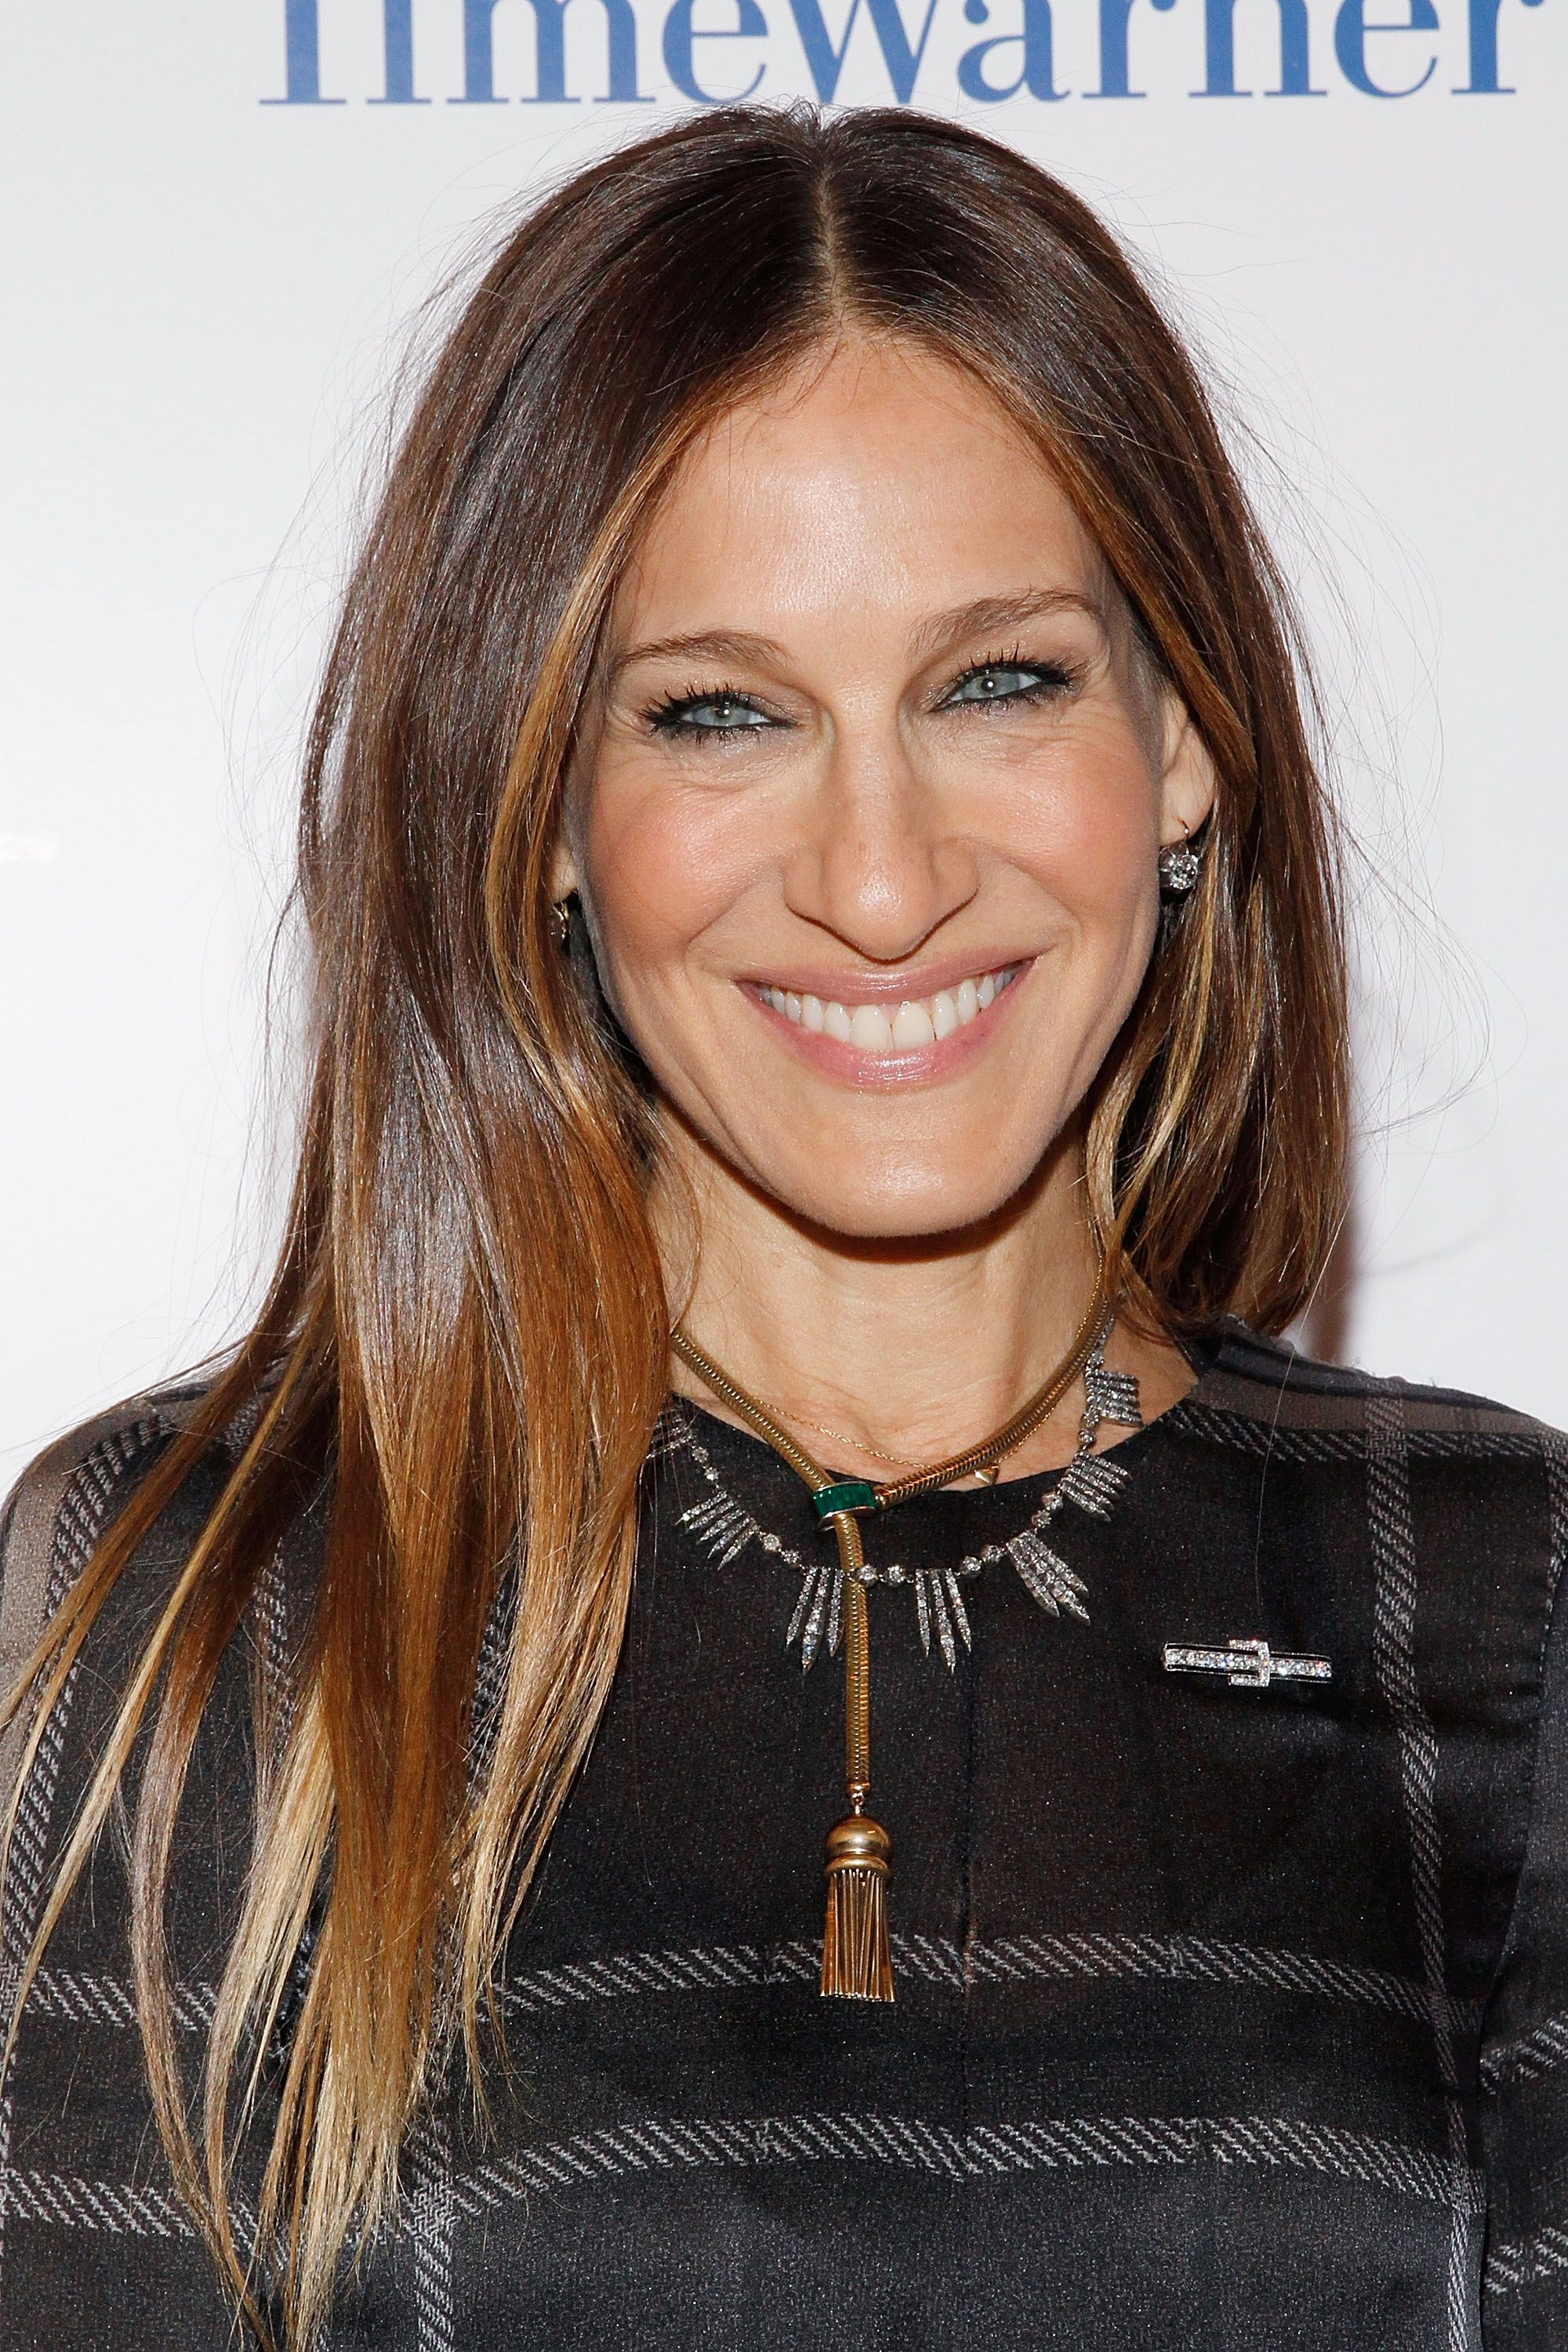 "<p>In a 2016 interview with <em data-verified=""redactor"" data-redactor-tag=""em""><a href=""http://www.hollywoodreporter.com/rambling-reporter/sarah-jessica-parker-explains-her-no-nudity-stance-943166"" target=""_blank"" data-tracking-id=""recirc-text-link"">The Hollywood Reporter</a></em><span class=""redactor-invisible-space"" data-verified=""redactor"" data-redactor-tag=""span"" data-redactor-class=""redactor-invisible-space""><a href=""http://www.hollywoodreporter.com/rambling-reporter/sarah-jessica-parker-explains-her-no-nudity-stance-943166""></a>,</span><span class=""redactor-invisible-space"" data-verified=""redactor"" data-redactor-tag=""span"" data-redactor-class=""redactor-invisible-space""> SJP explains her decision not to film any naked scenes throughout the show's six-season run: ""I've always had one, and it's apropos of absolutely nothing. Some people have a perks list and they are legendary. They have to have white candles in their room. I don't have a crazy list like that. I've just always had [a no-nudity clause].""<span class=""redactor-invisible-space"" data-verified=""redactor"" data-redactor-tag=""span"" data-redactor-class=""redactor-invisible-space""></span></span></p>"